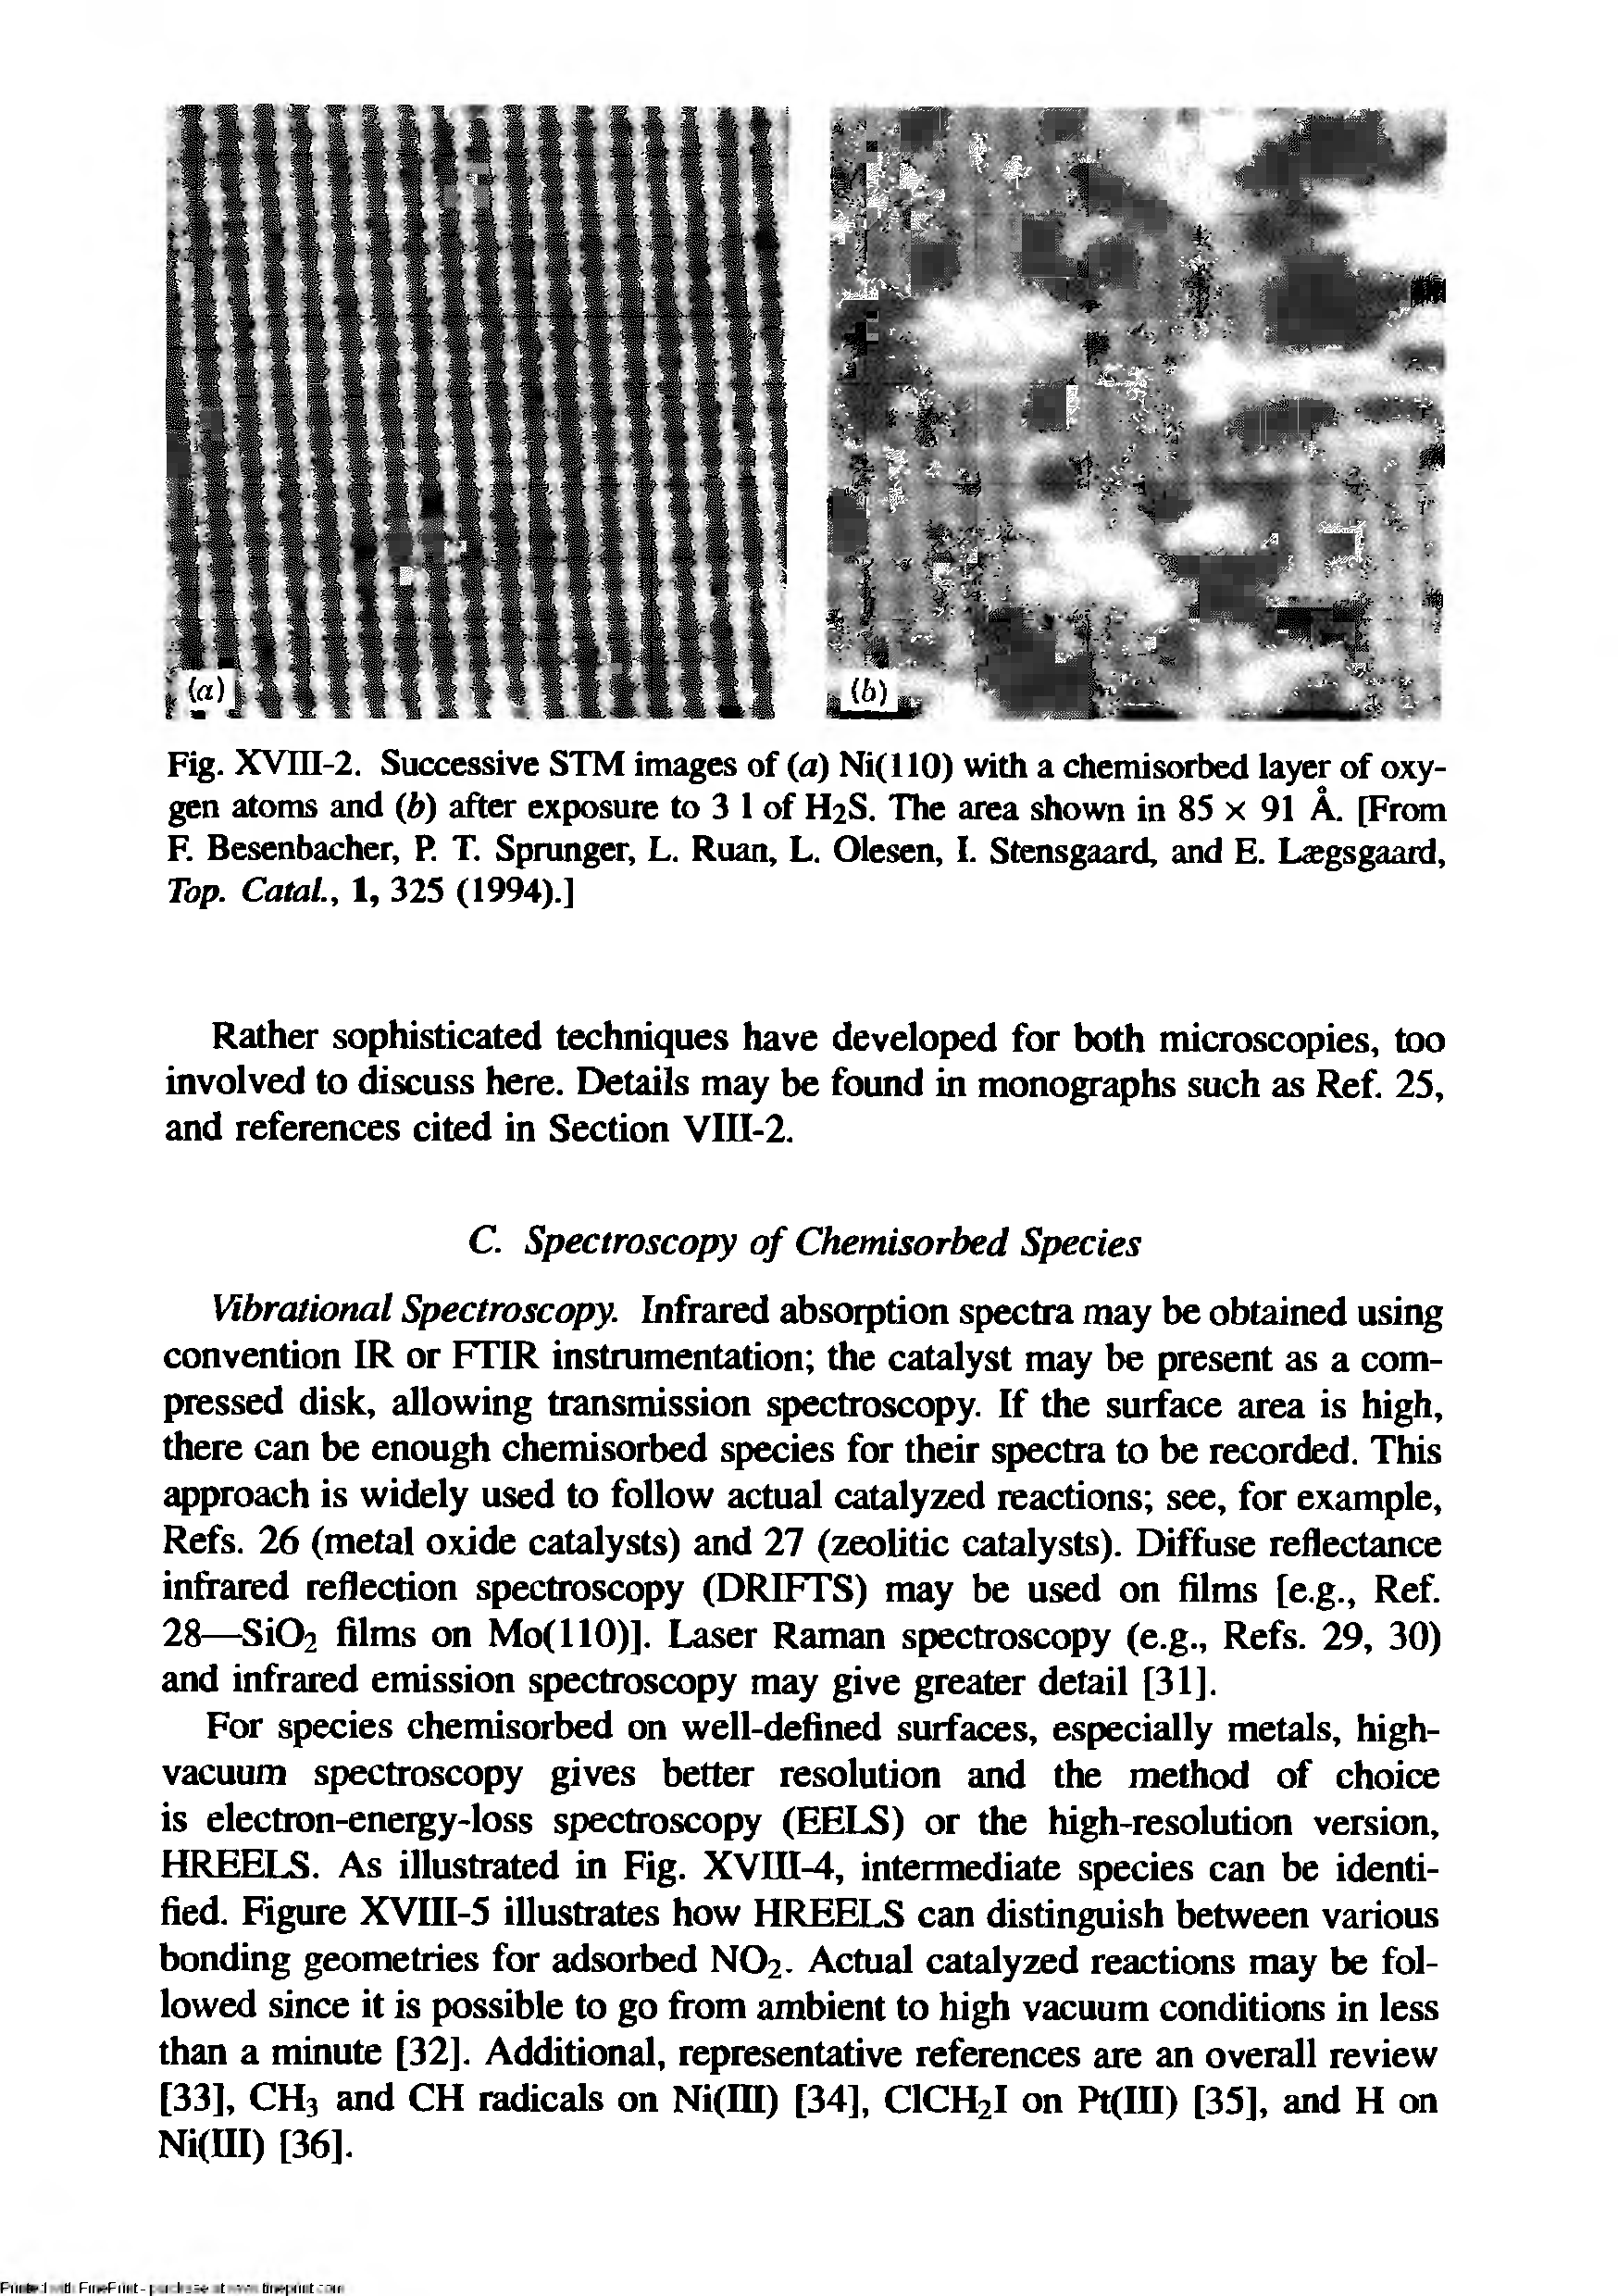 Fig. XVni-2. Successive STM images of (a) Ni(llO) with a chemisorbed layer of oxygen atoms and (b) after exposure to 3 1 of H2S. The area shown in 85 x 91 A. [From F. Besenbacher, P. T. Sprunger, L. Ruan, L. Olesen, I. Stensgaard, and E. Lcegsgaard, Tap. Catal., 1, 325 (1994).]...